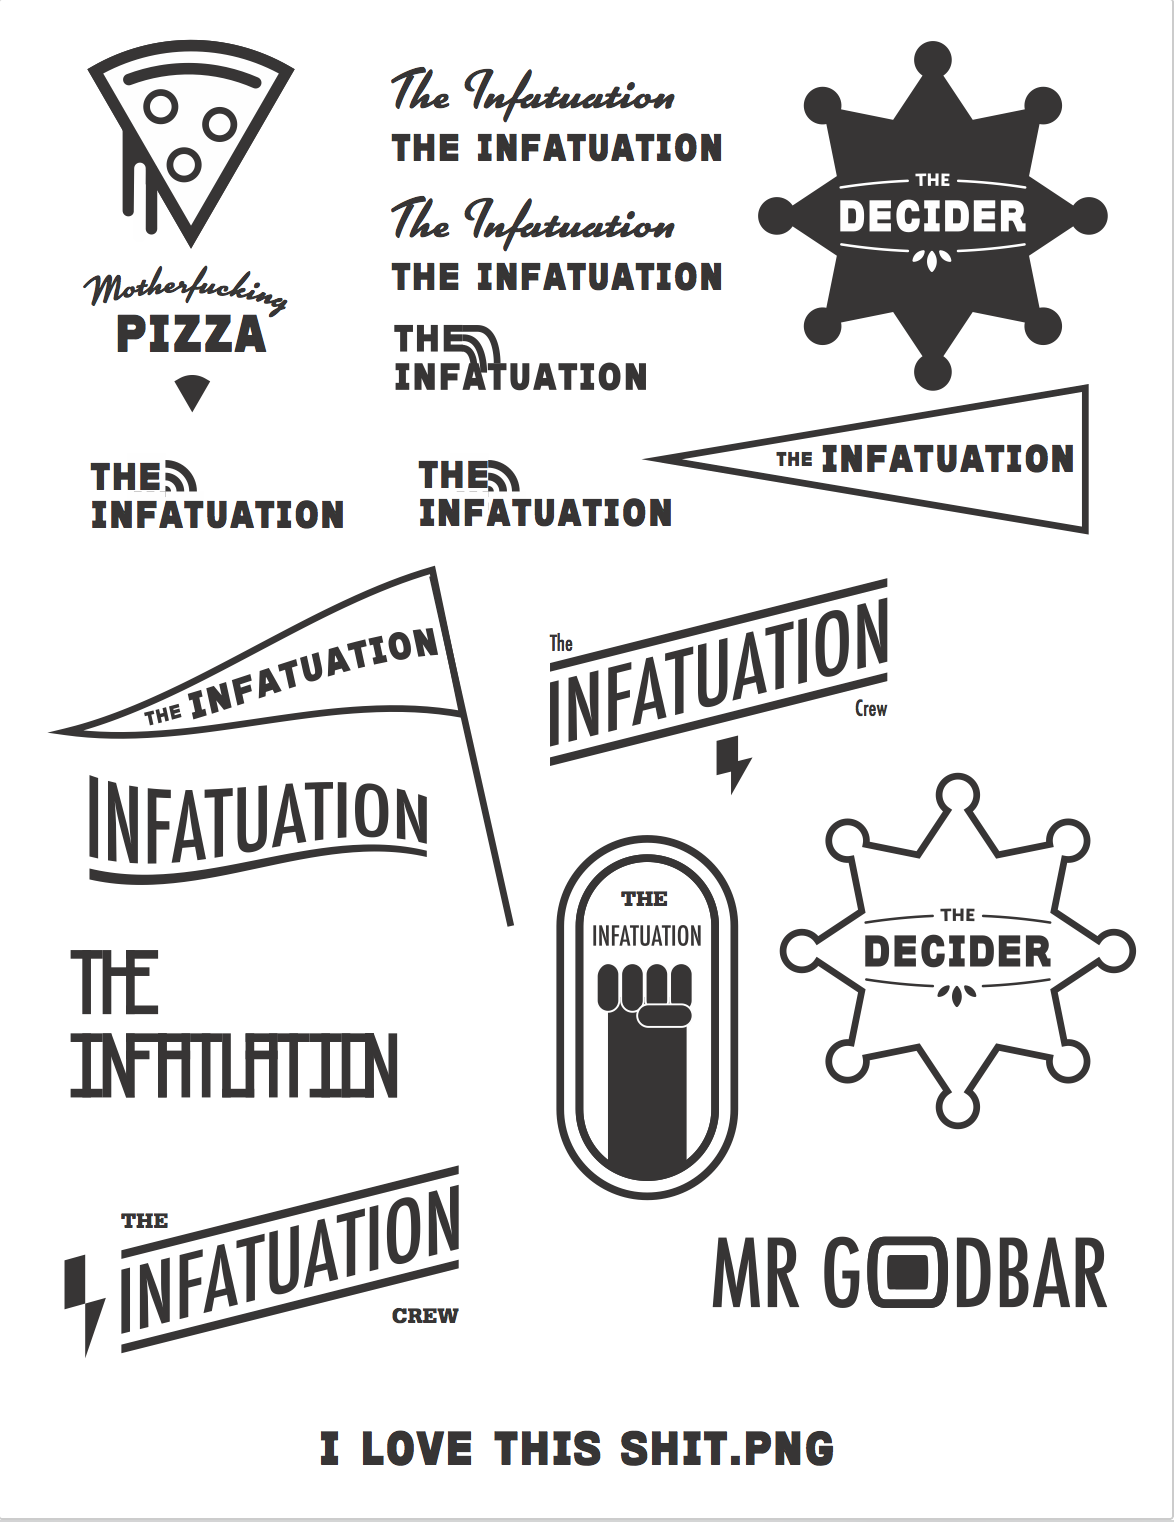 Rebranding The Infatuation: A Company With a Passionate